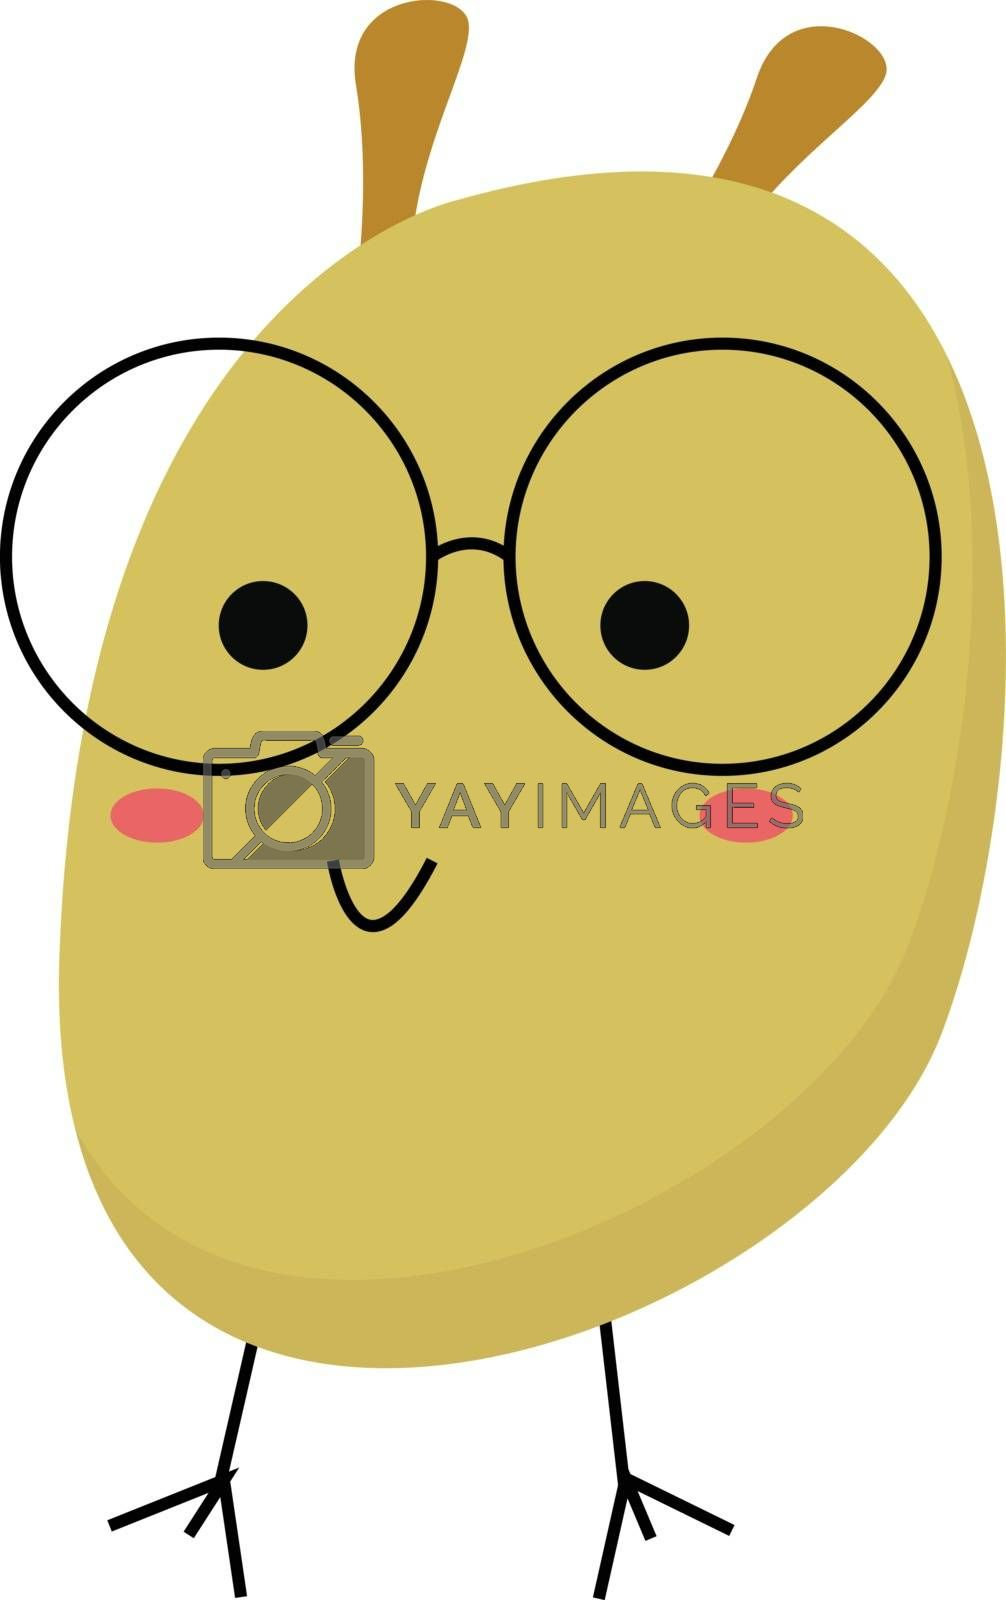 Royalty free image of Cartoon funny monster with glasses vector or color illustration by Morphart